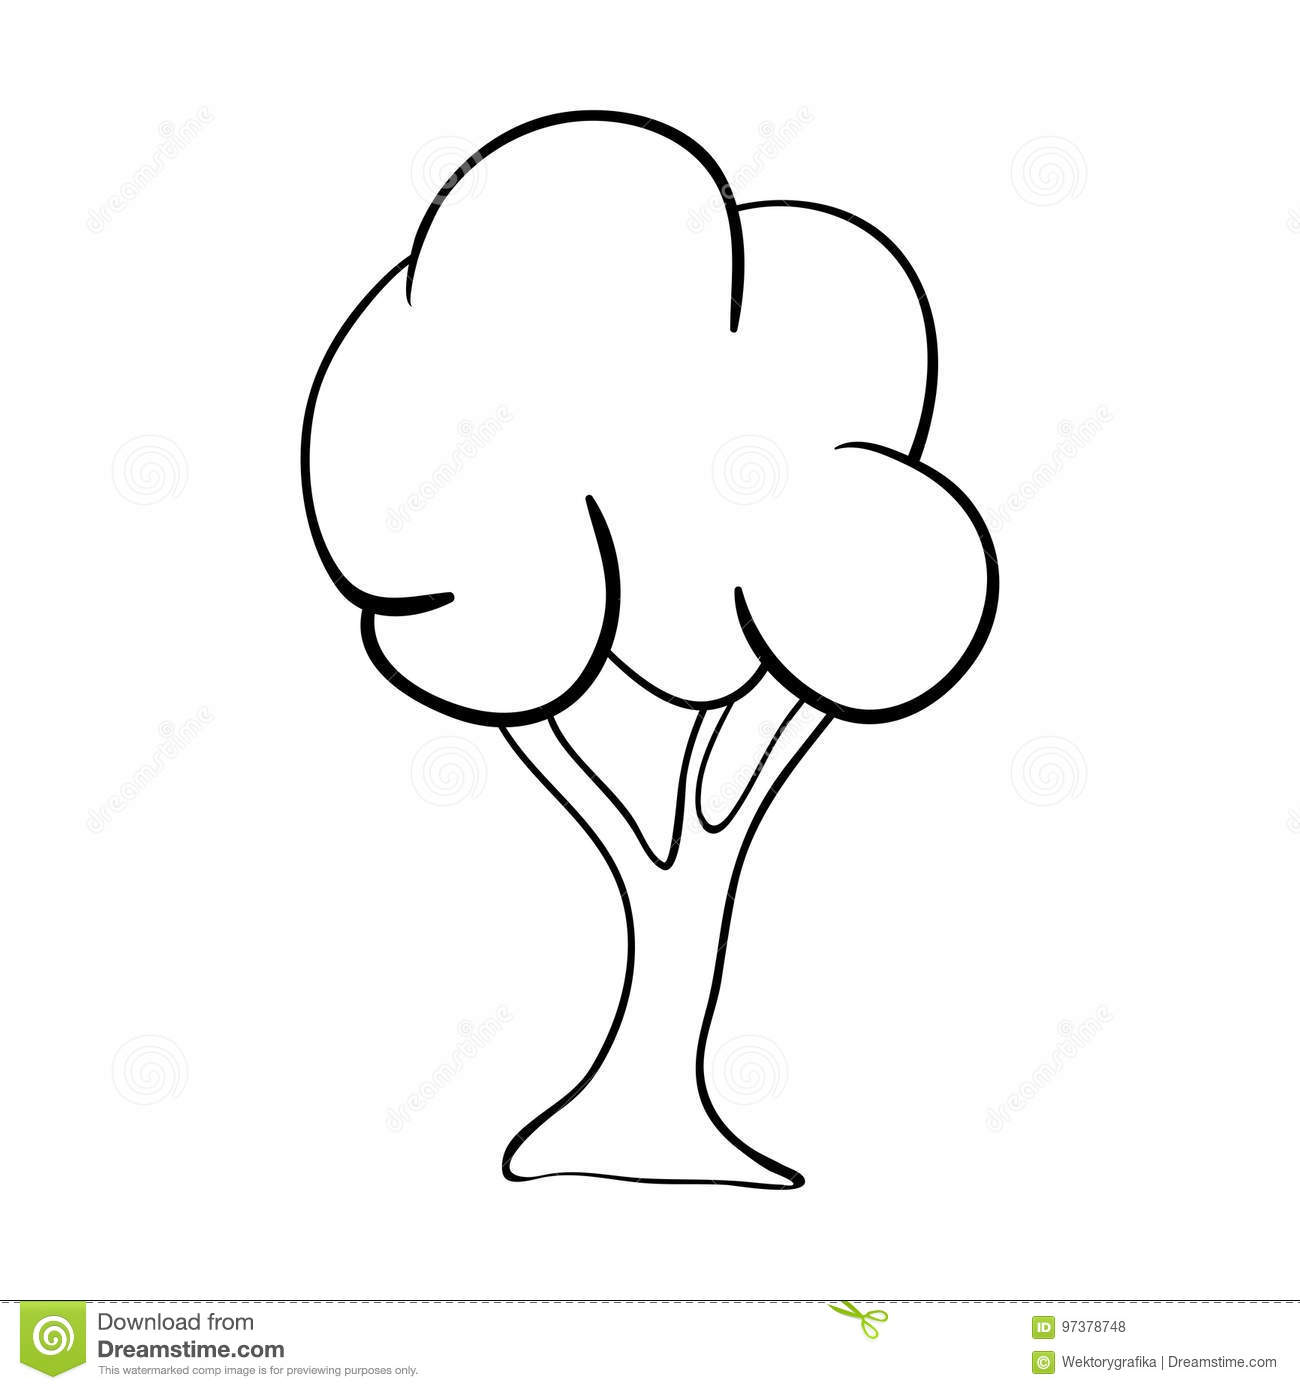 Cartoon Tree Outlinevector Symbol Icon Design Beautiful Illust Stock Vector Illustration Of Season Plant 97378748 Here you can explore hq cartoon tree transparent illustrations, icons and clipart with filter setting like size, type, color etc. https www dreamstime com stock illustration cartoon tree outlinevector symbol icon design beautiful illust outline vector illustration isolated white background image97378748